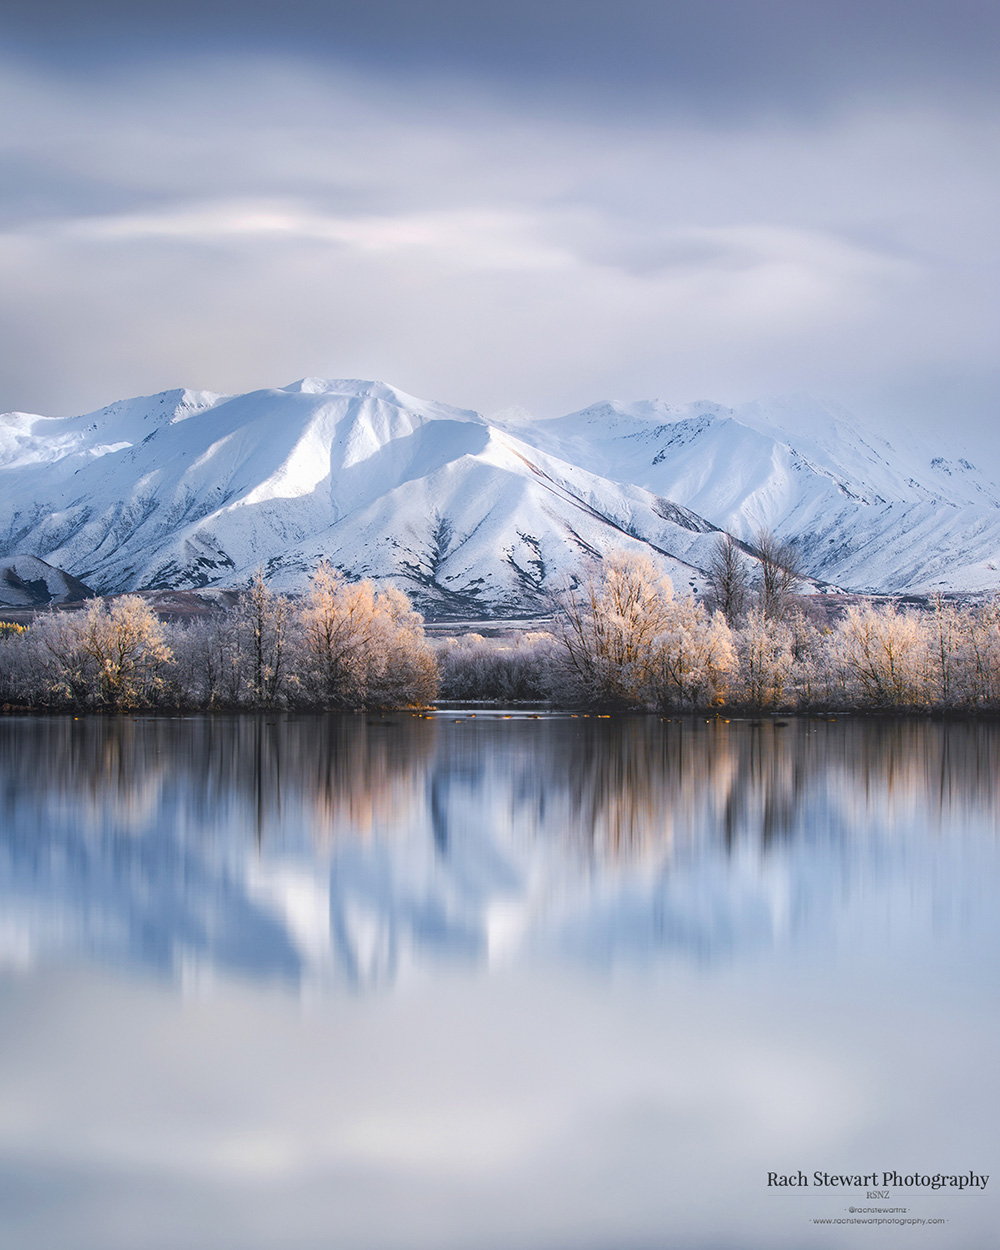 Nature Photography: 10 Tips To Help With Landscape Photography